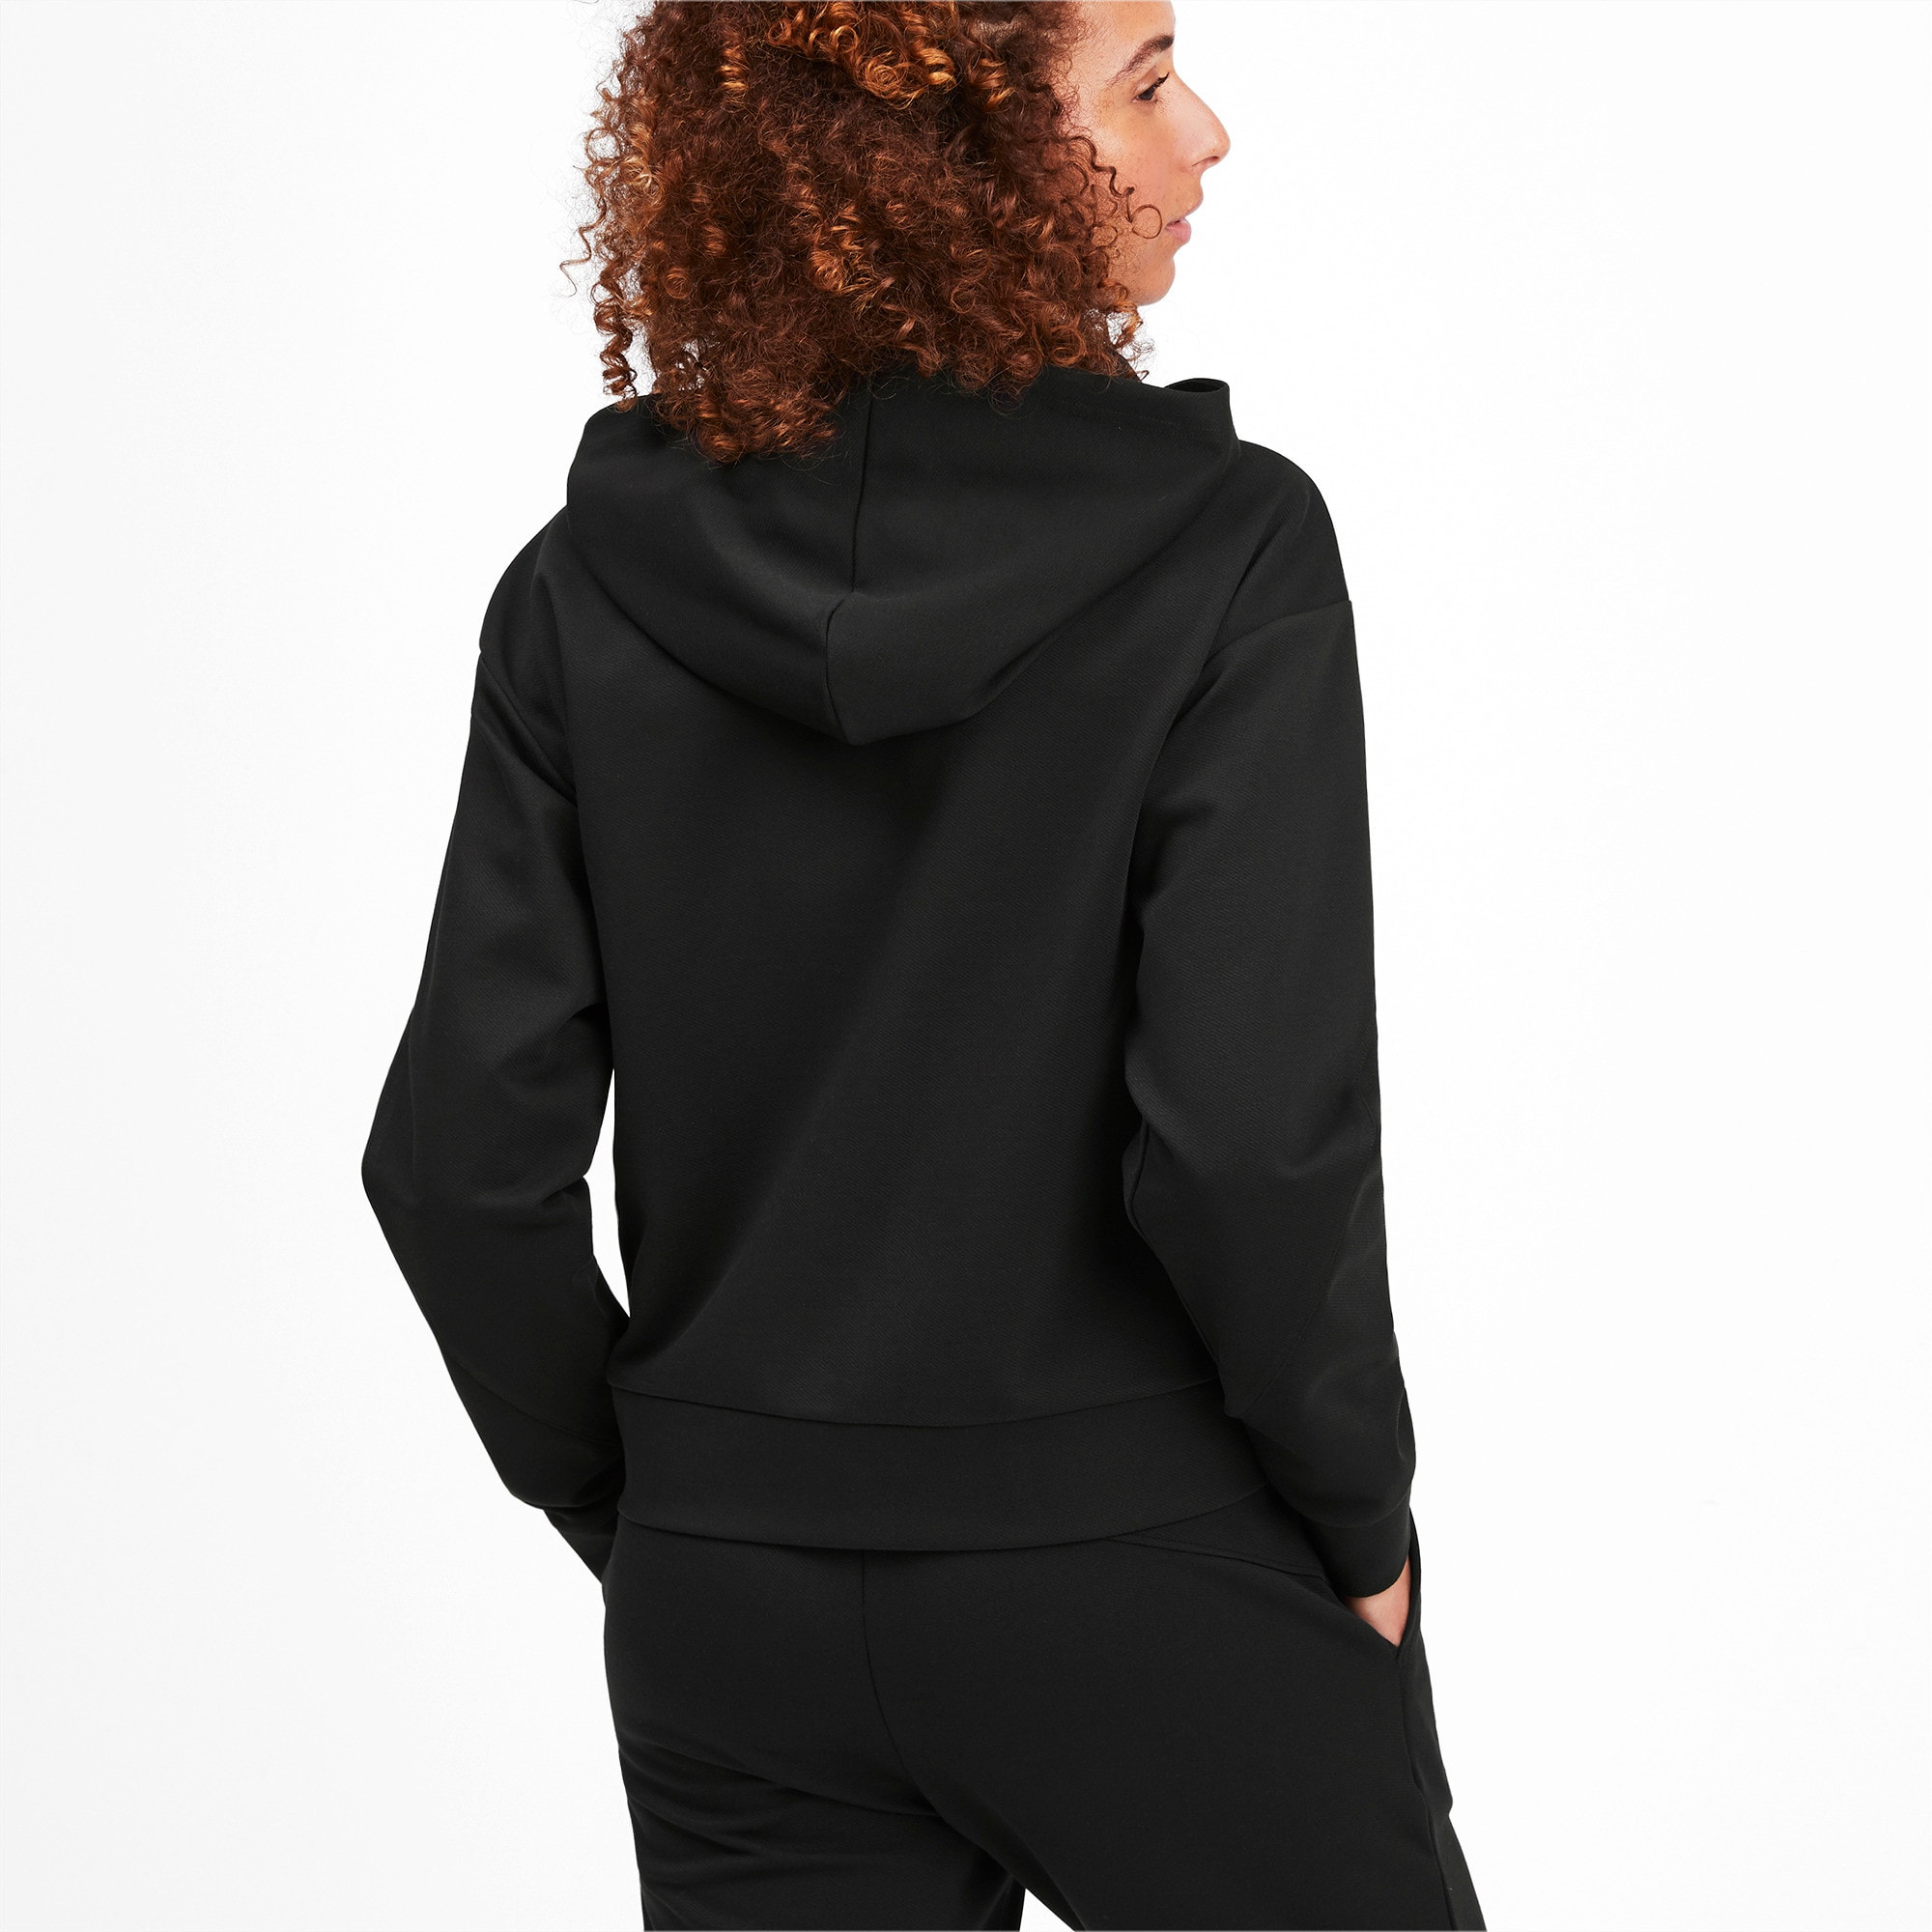 Thumbnail 2 of NU-TILITY Full Zip Women's Hoodie, Puma Black, medium